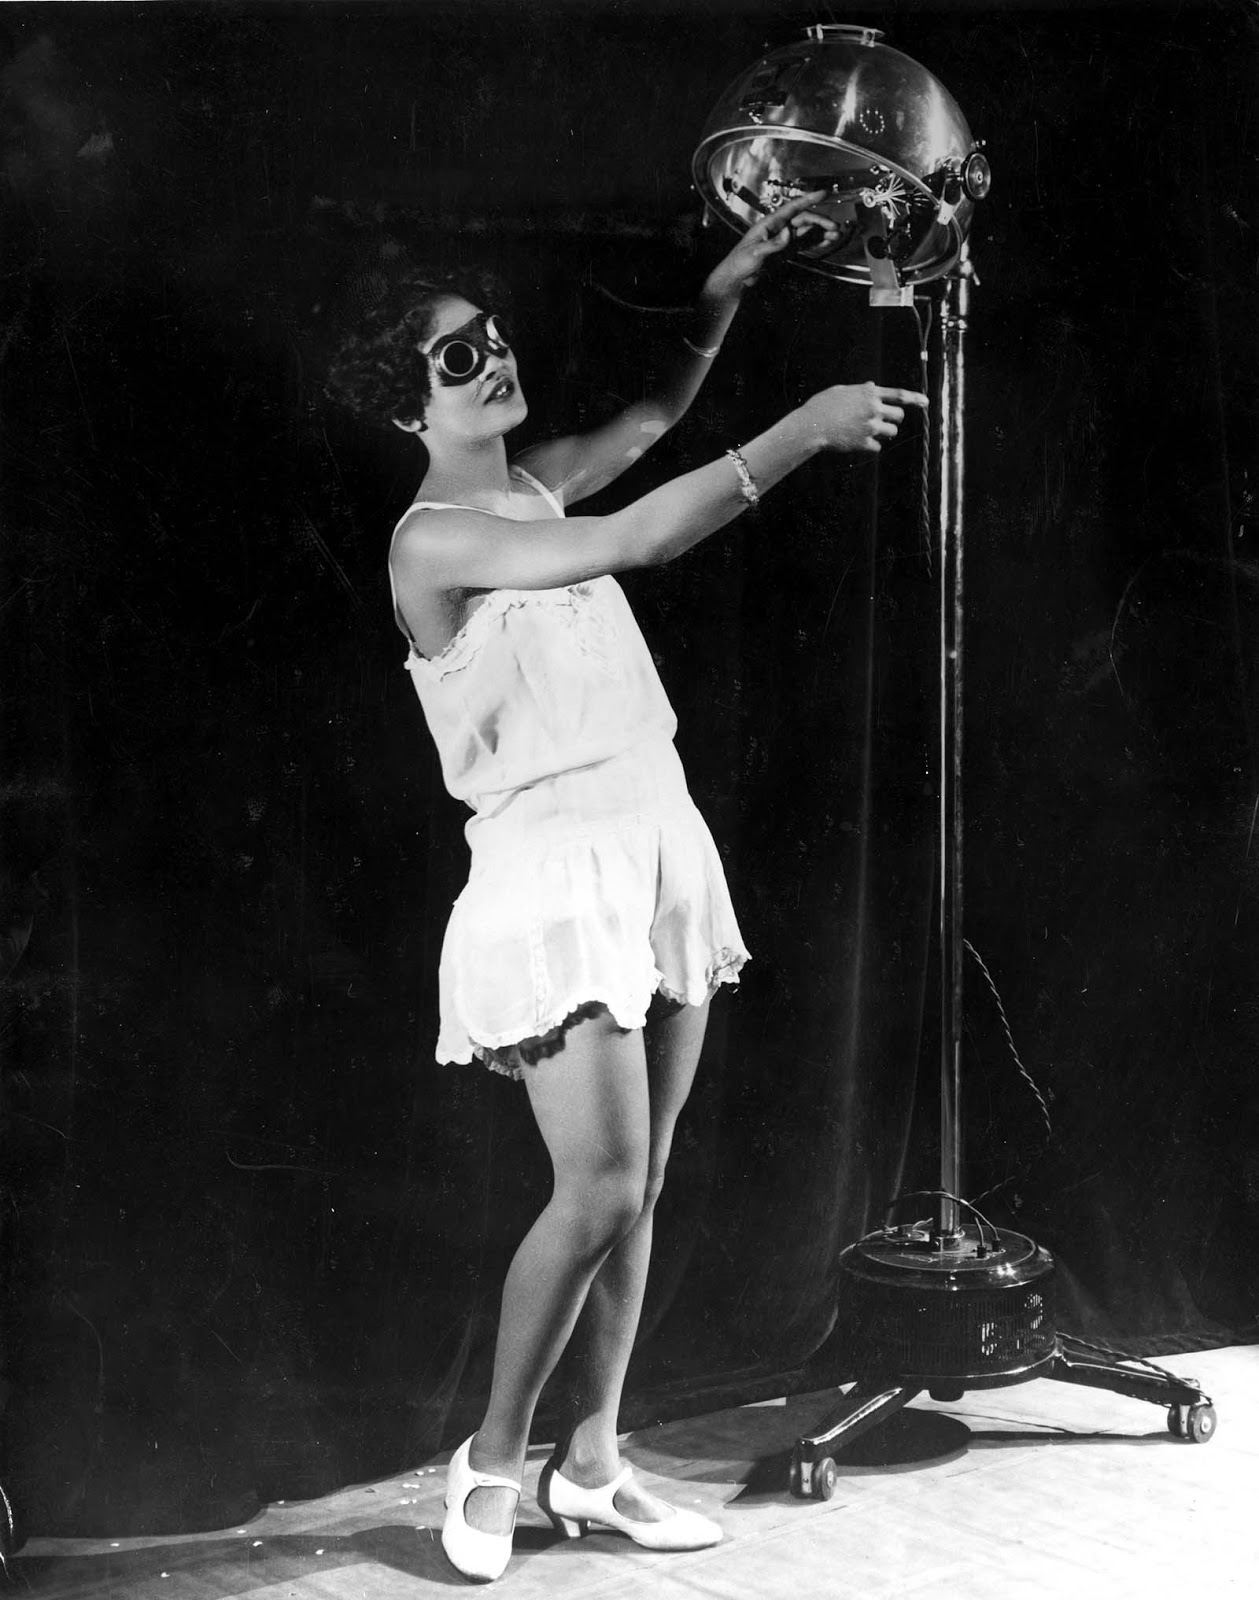 23 year old Alma Smith, the 'cleverest soubrette' of the cast of 'Blackbirds' at the London Pavilion, receiving her daily dose of ultra violet rays from a sun machine. 1929.